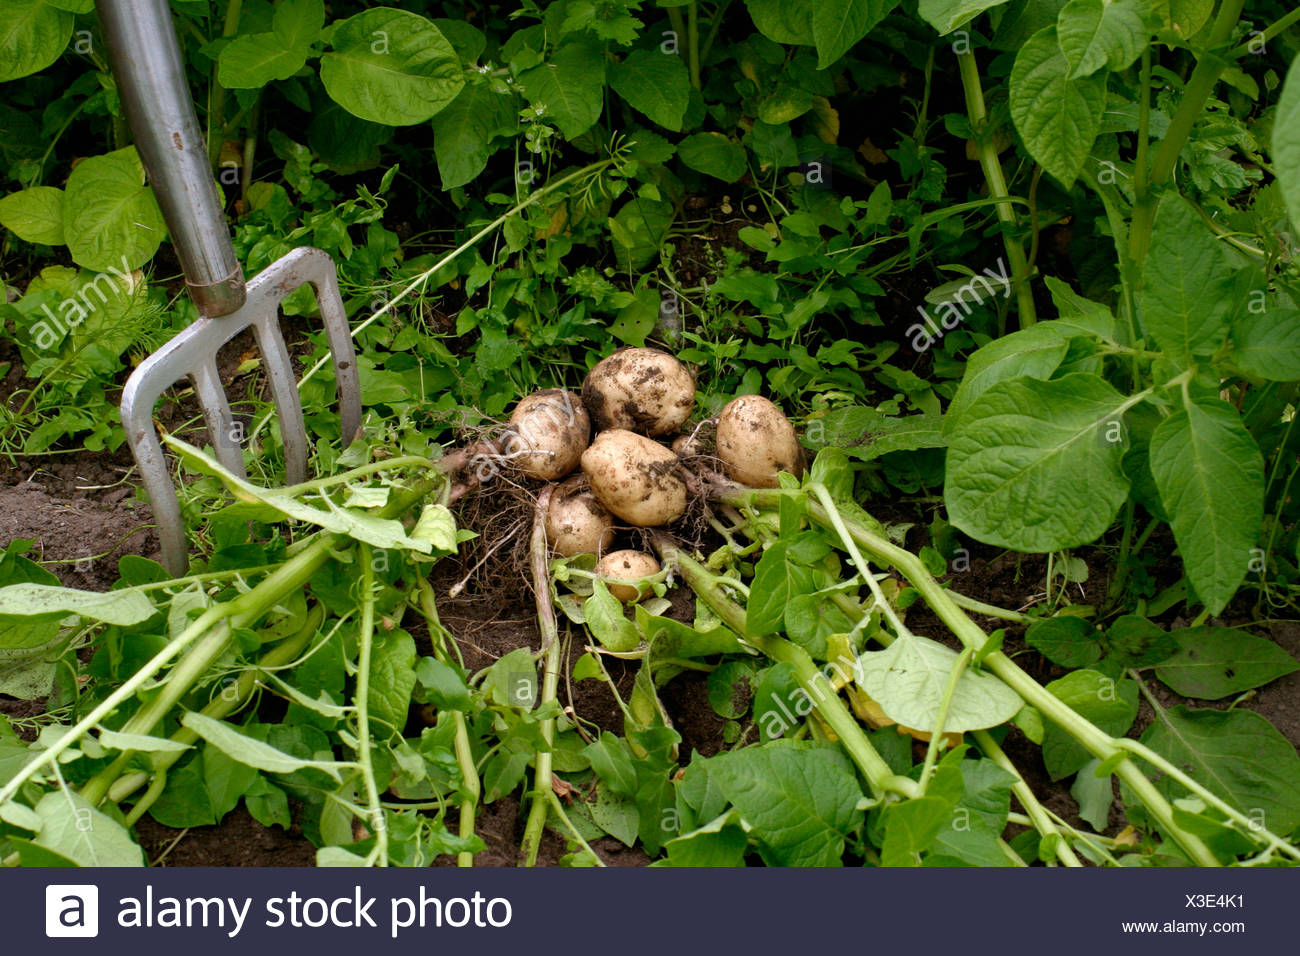 Greenery in the potato-patch - Stock Image